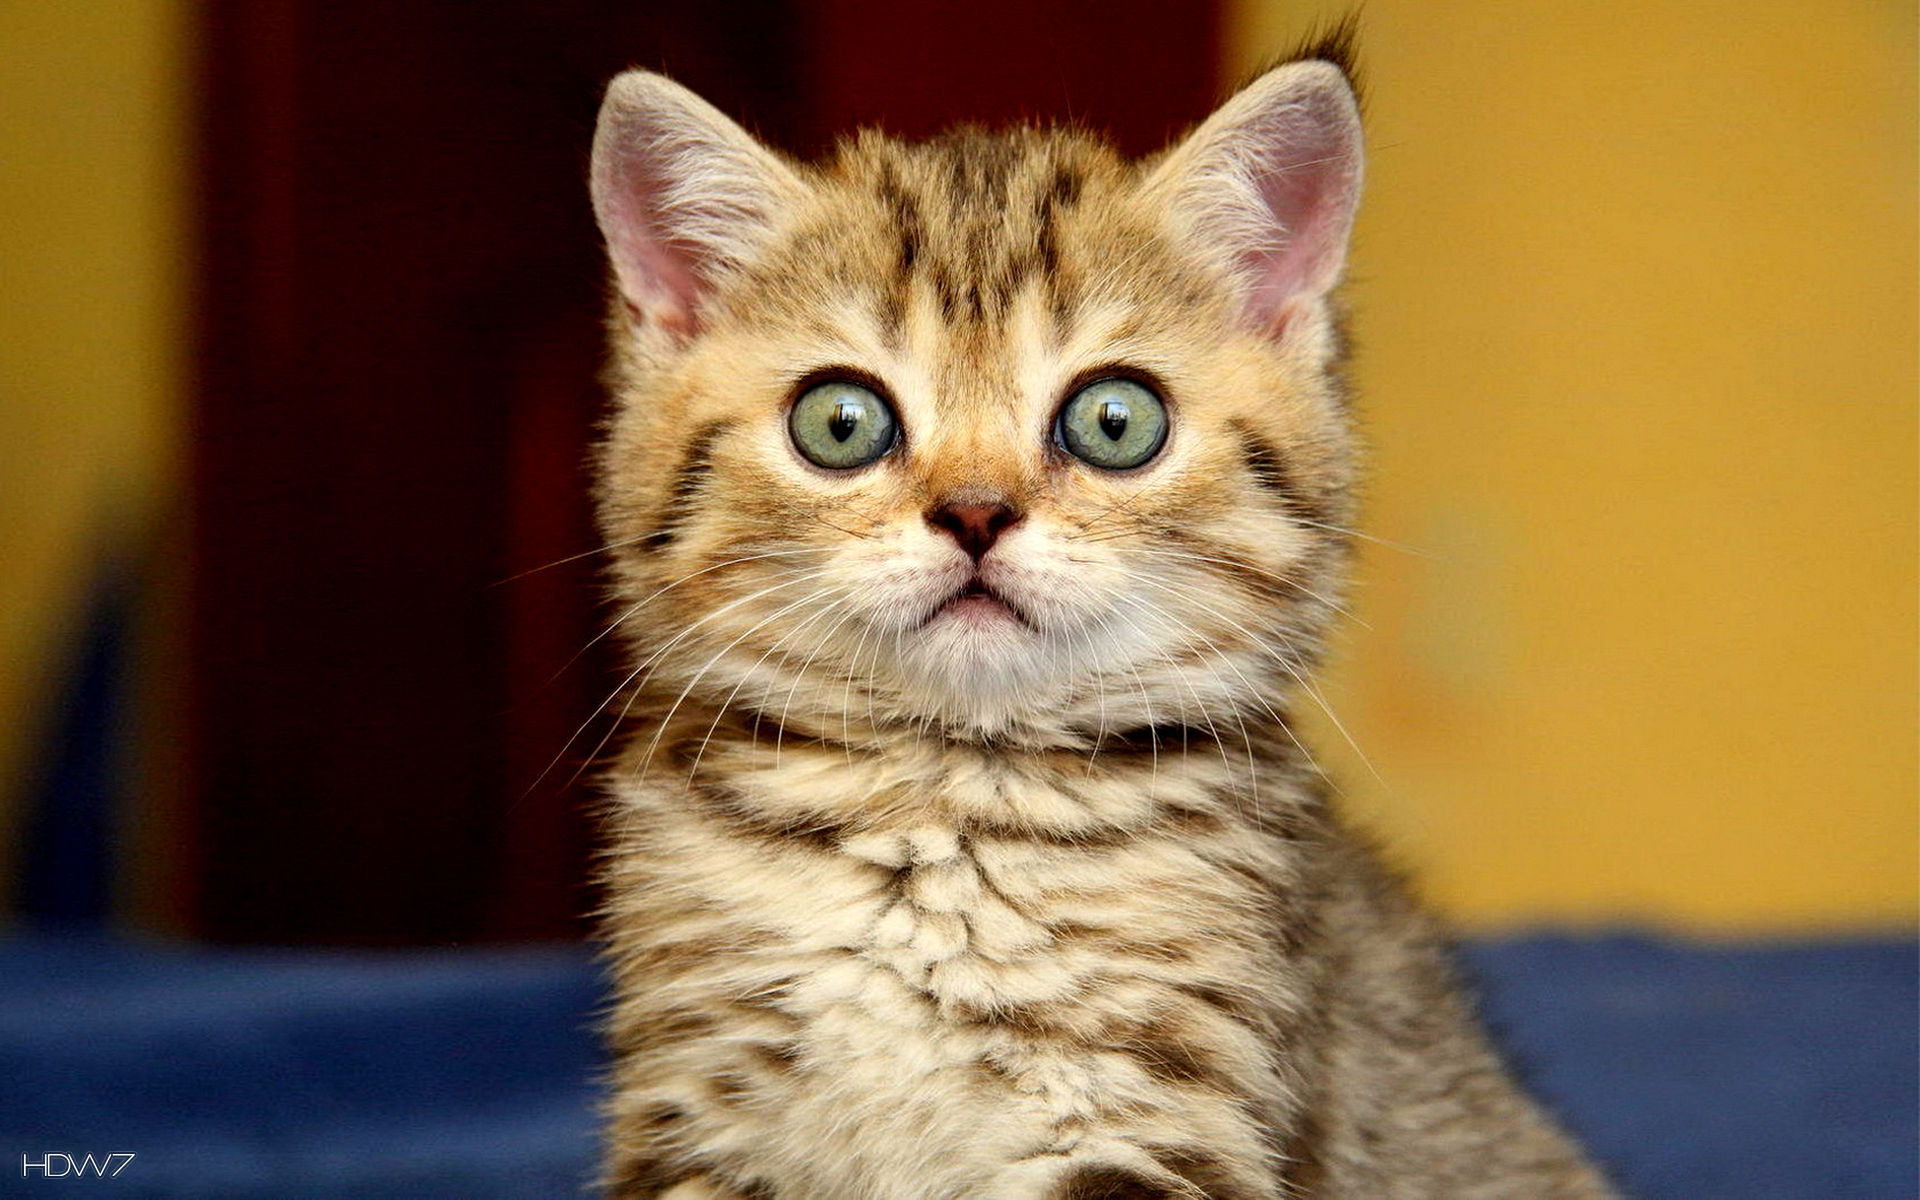 animals surprised cute kitty cat | HD wallpaper gallery #43